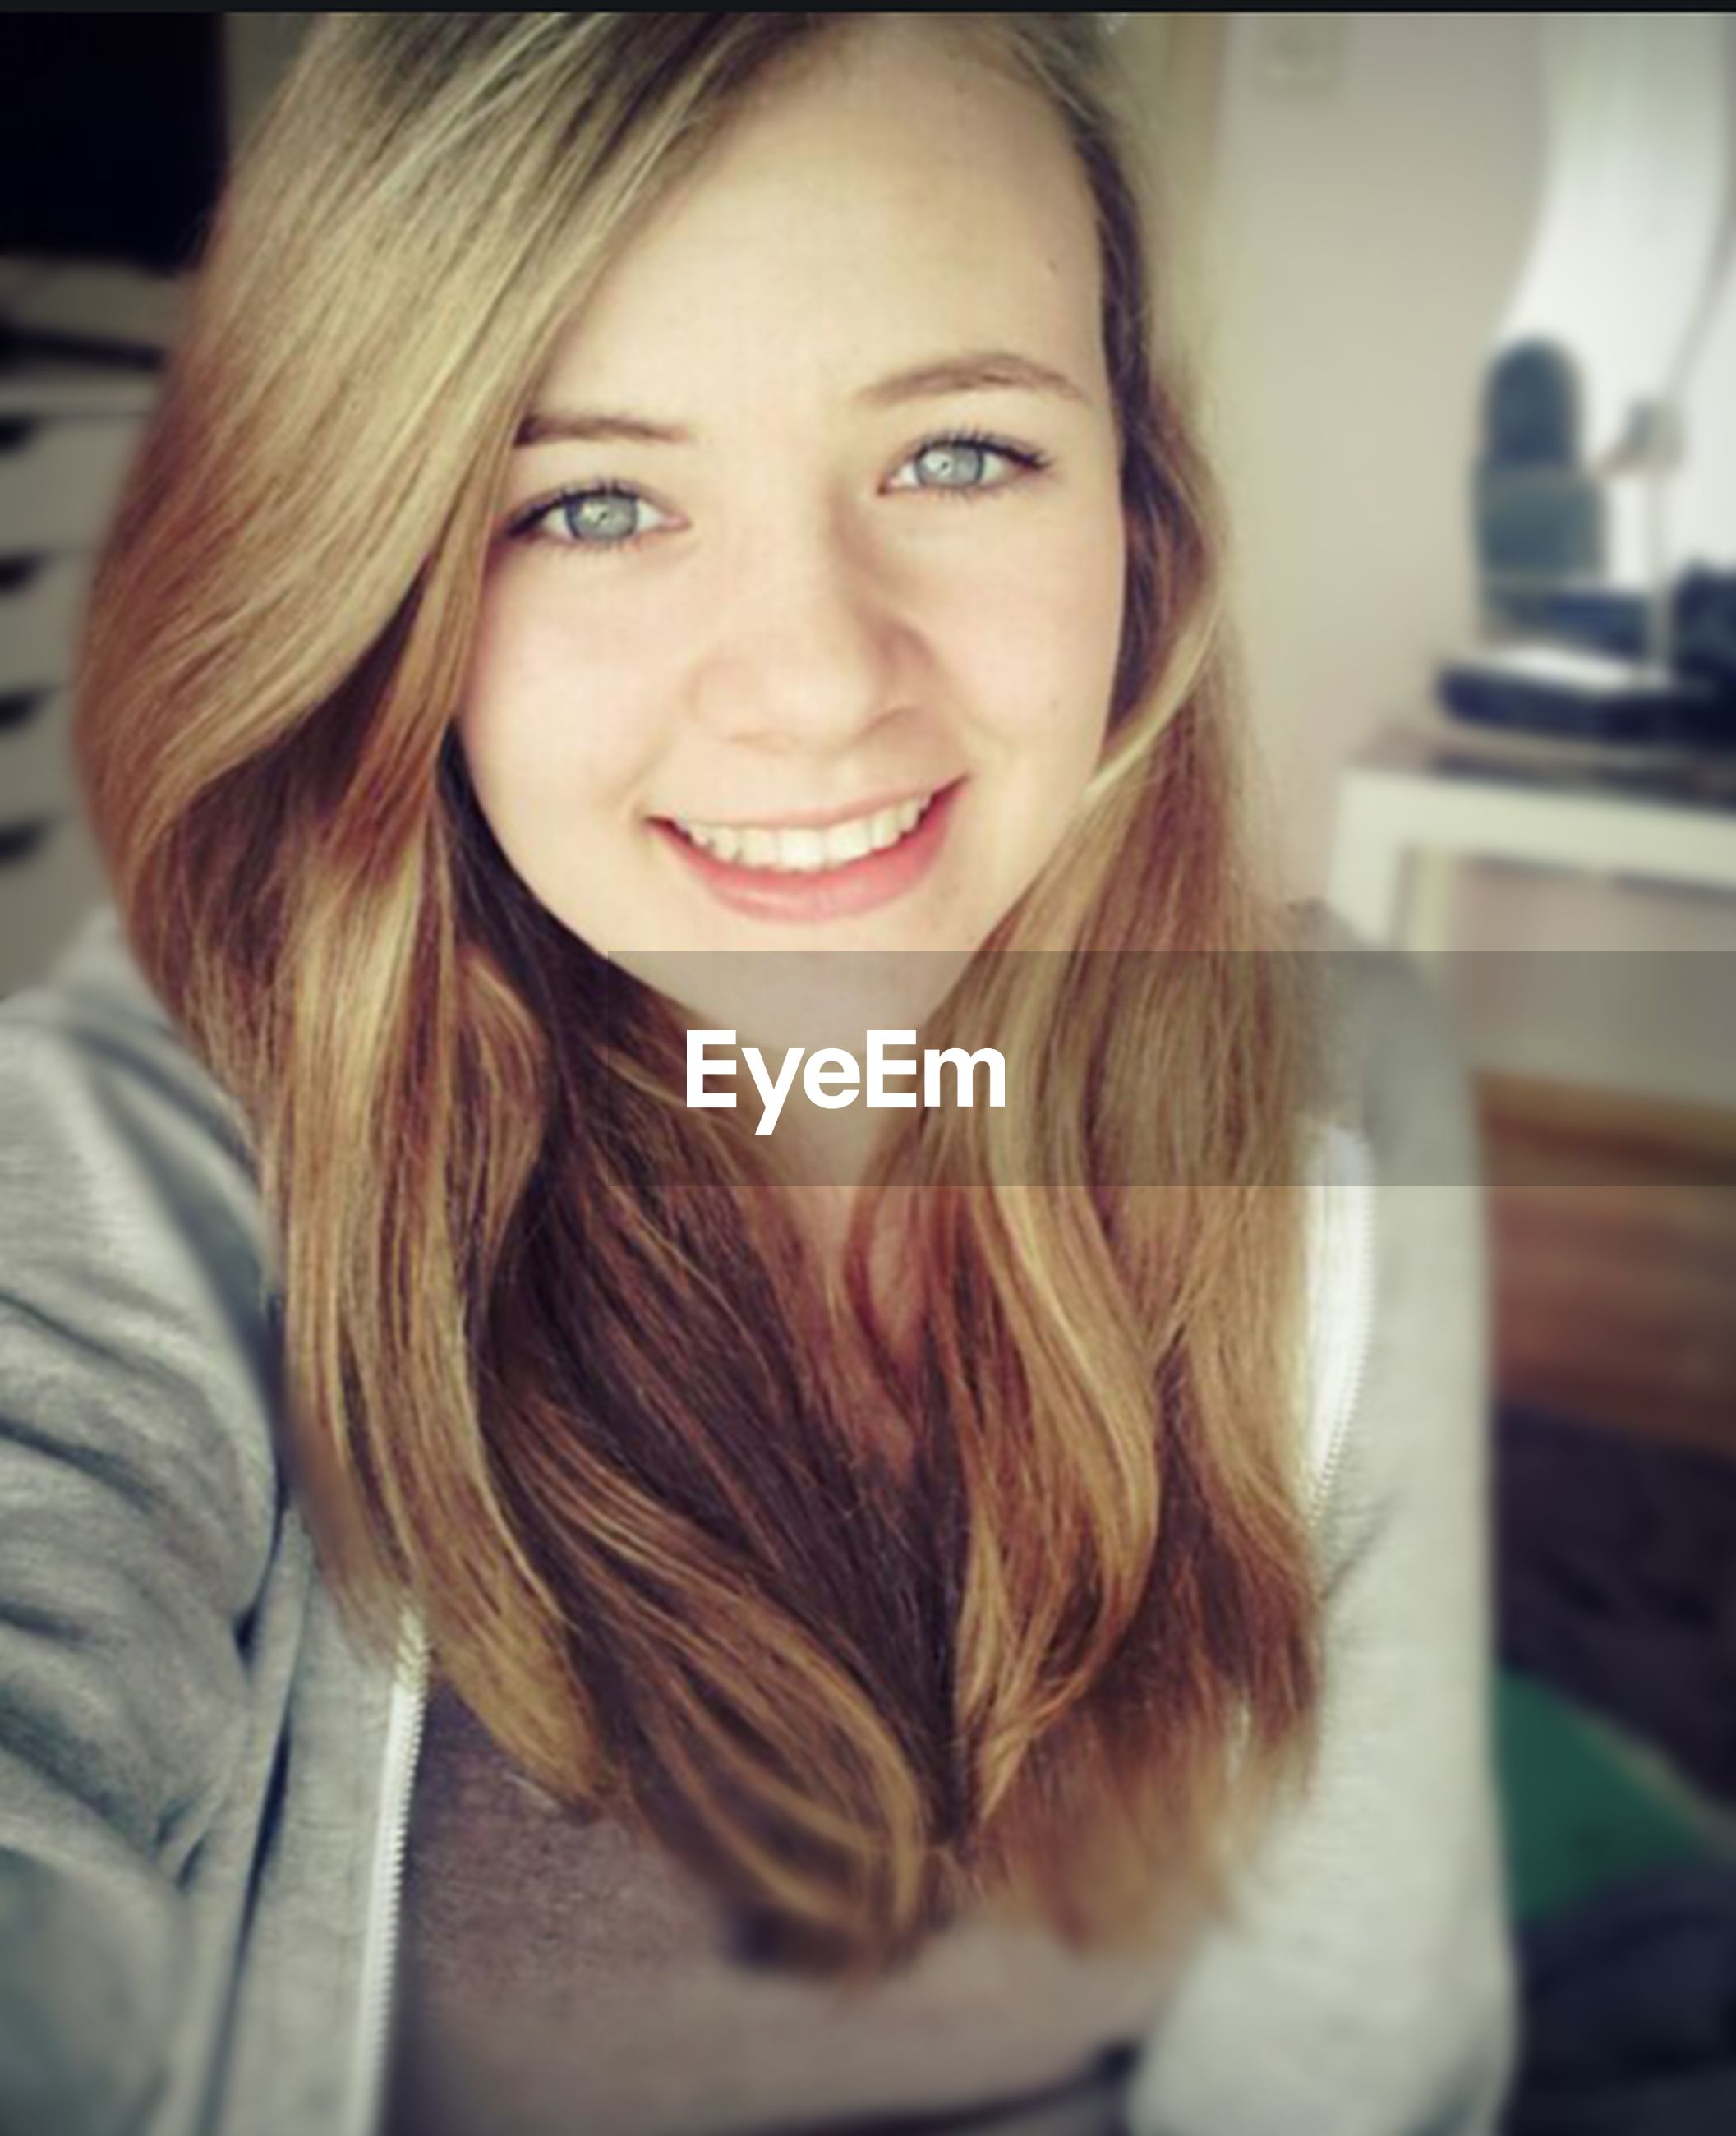 indoors, young women, person, young adult, long hair, portrait, headshot, looking at camera, lifestyles, front view, leisure activity, home interior, casual clothing, focus on foreground, close-up, smiling, head and shoulders